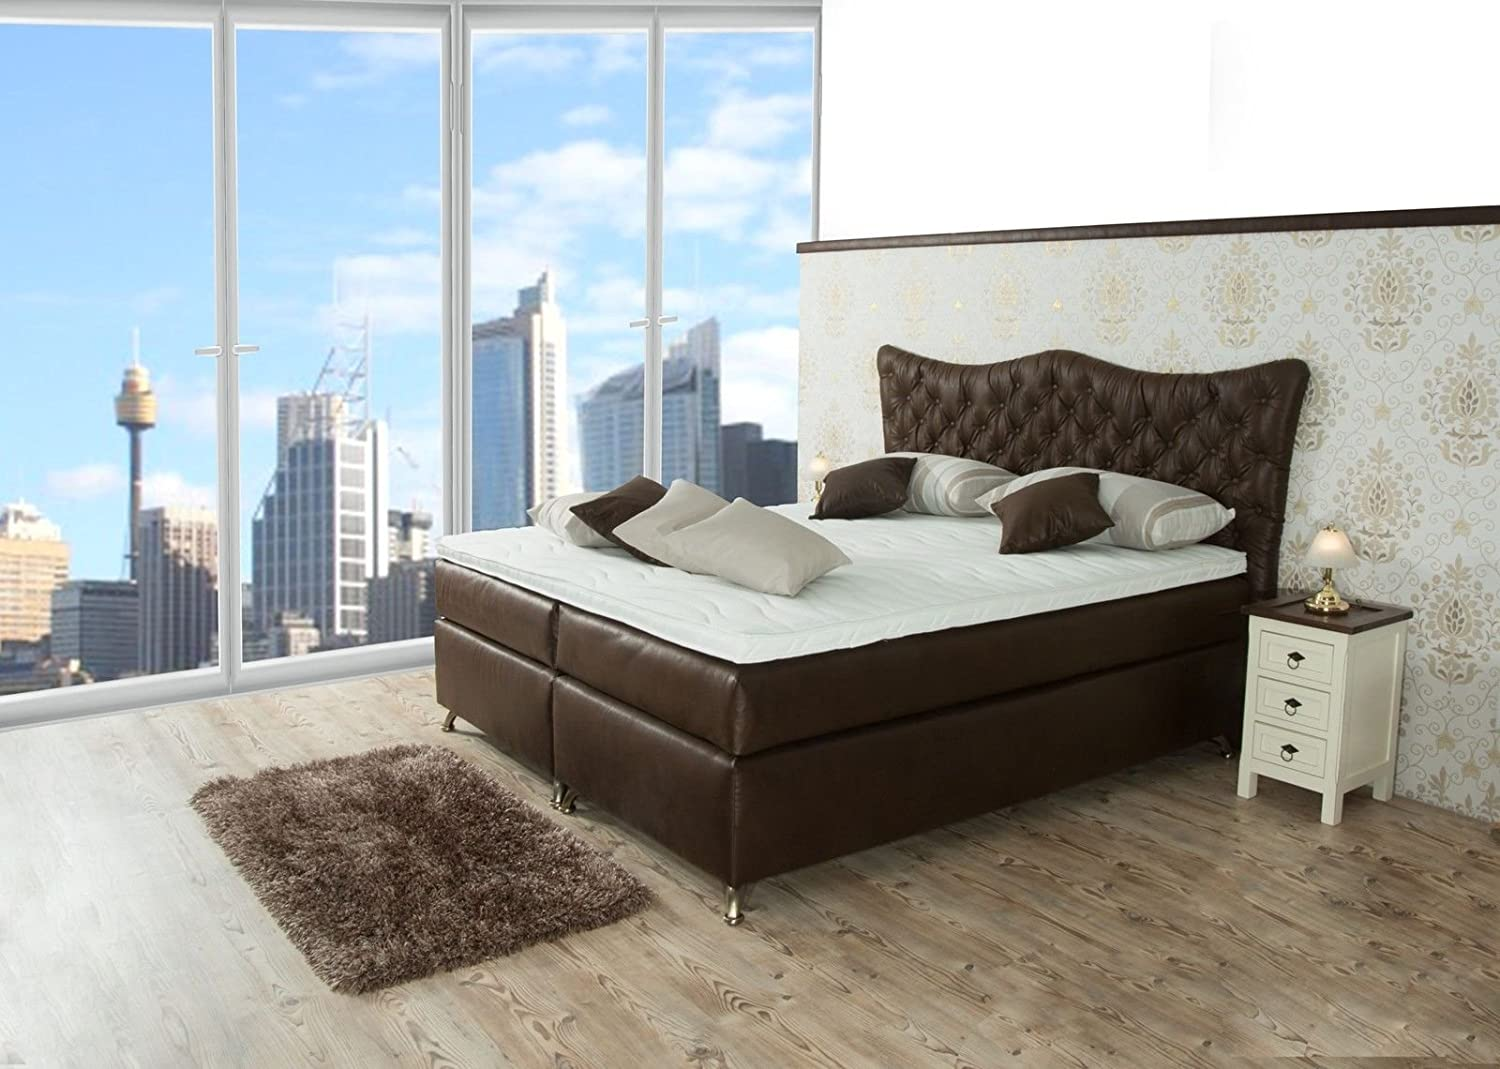 boxspringbett anna sb auch mit bettkasten oder elektrisch erh ltlich 80x200cm 90x200cm. Black Bedroom Furniture Sets. Home Design Ideas